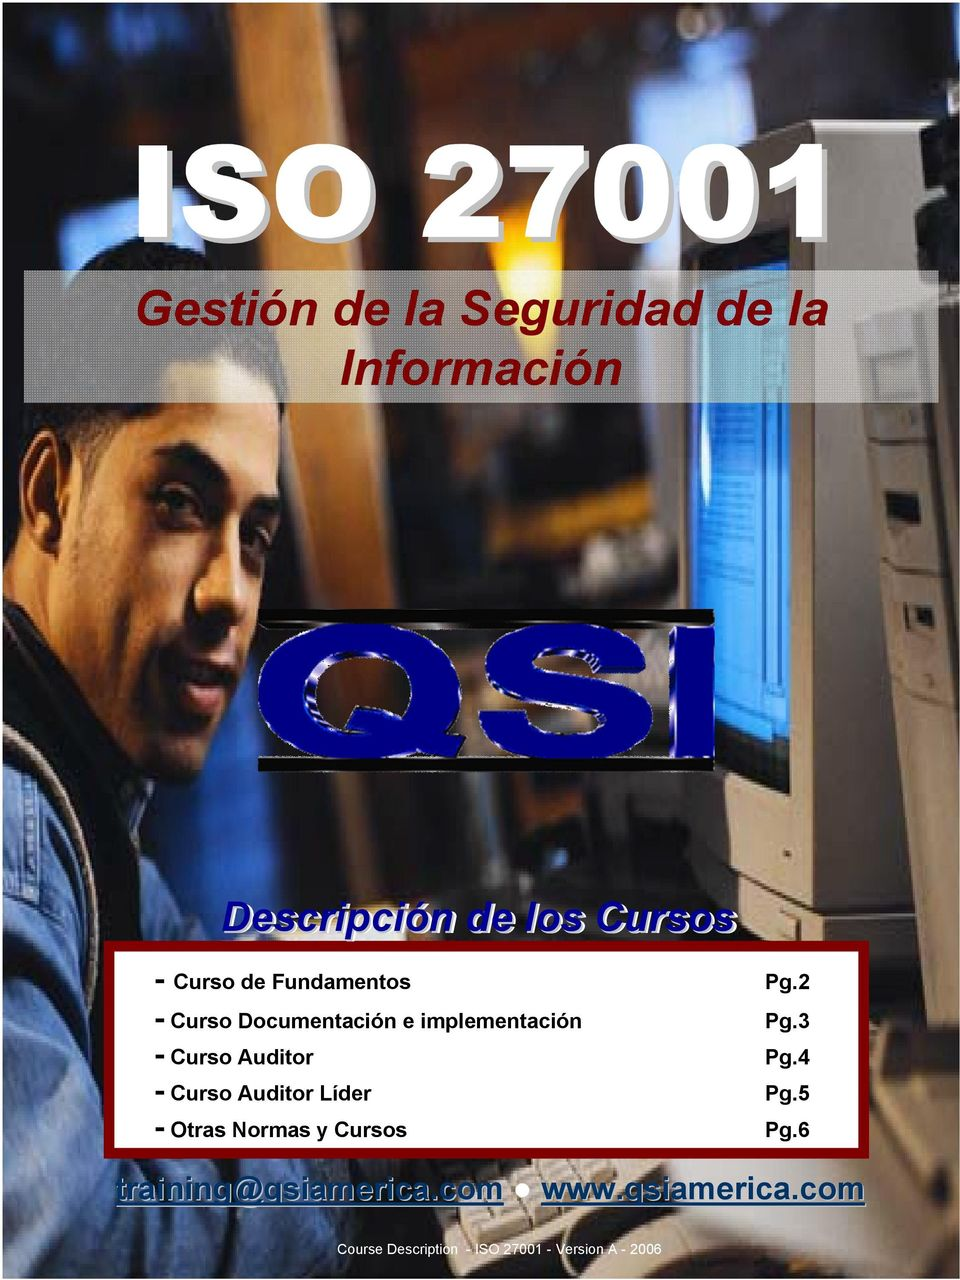 2 - Curso Documentación e implementación Pg.